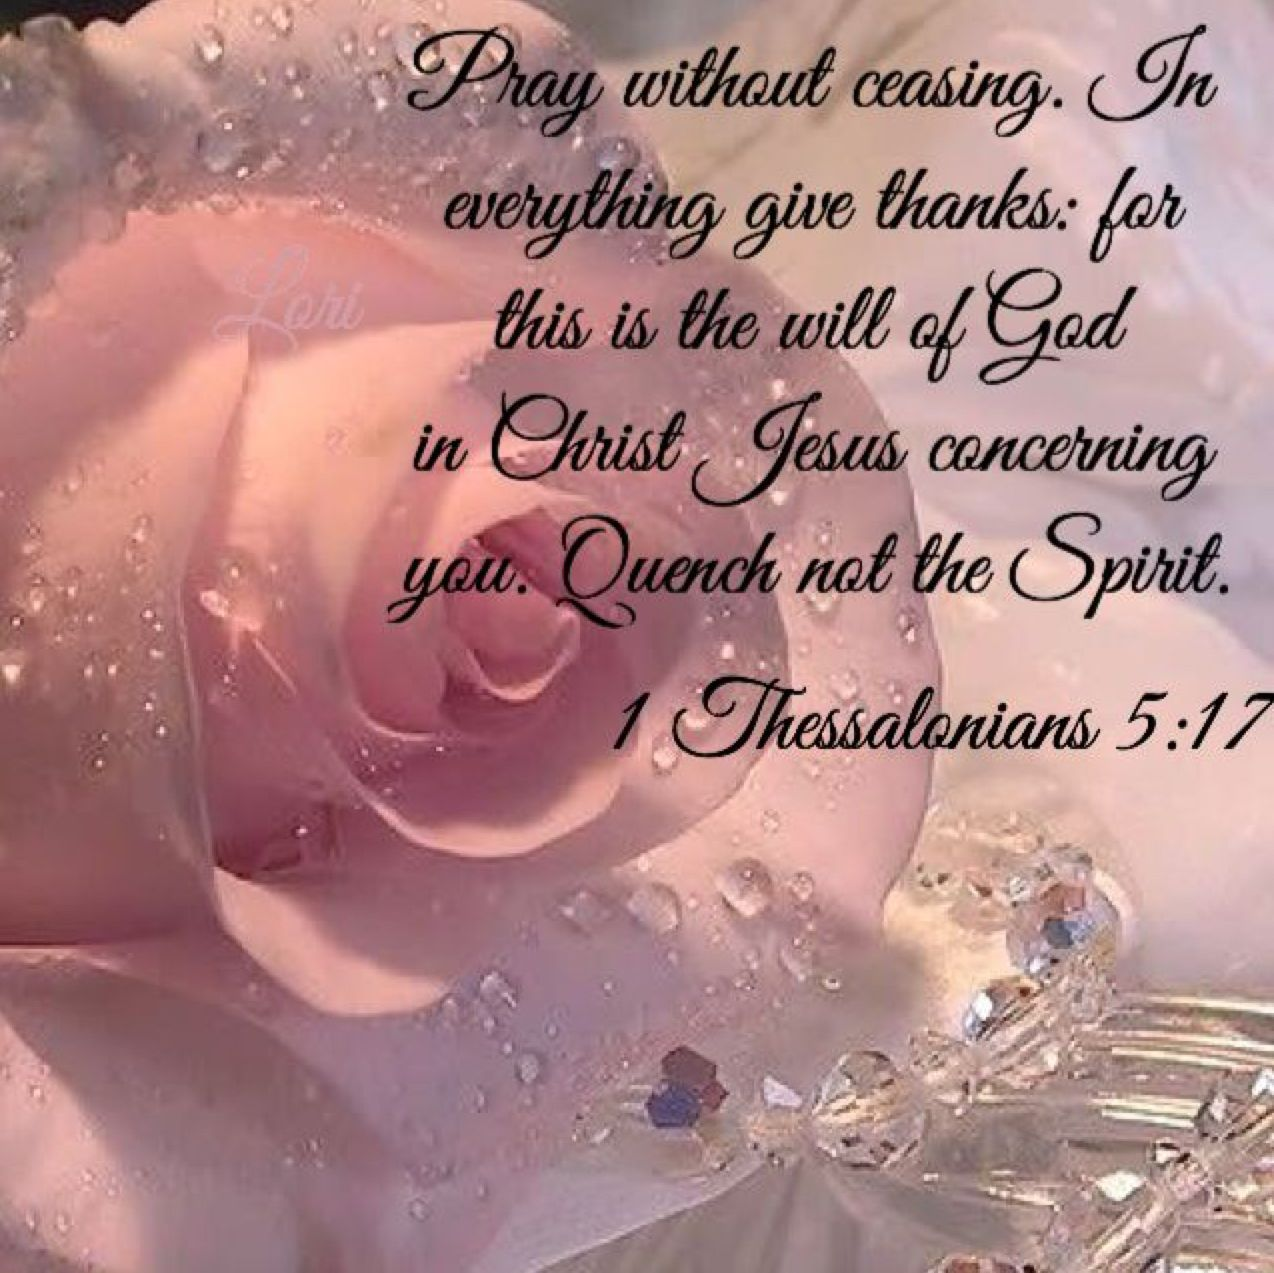 1 Thessalonians 5:17 Bible verse  Faithfully and